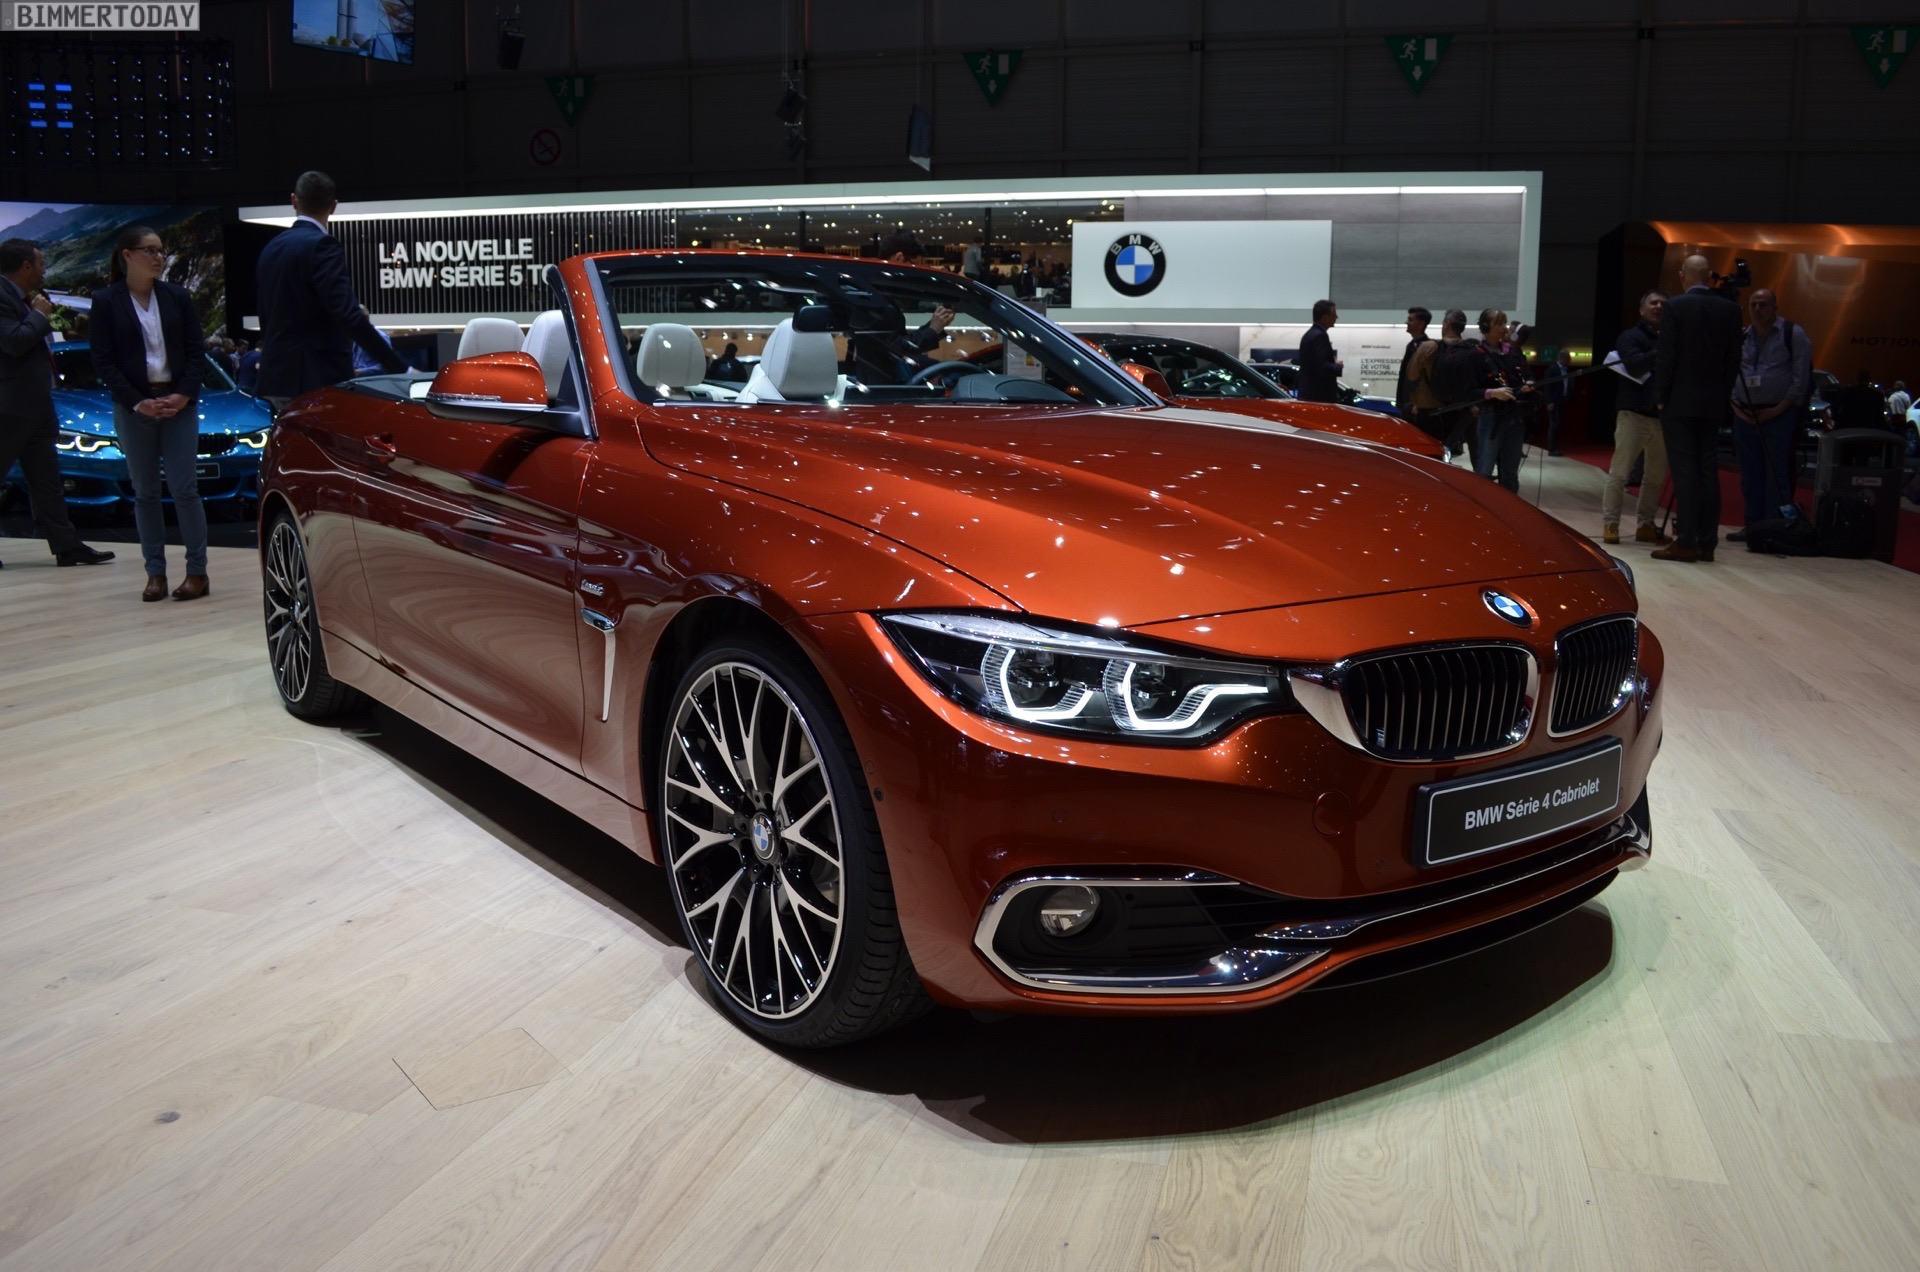 2017 geneva bmw 4 series convertible facelift in sunburst. Black Bedroom Furniture Sets. Home Design Ideas